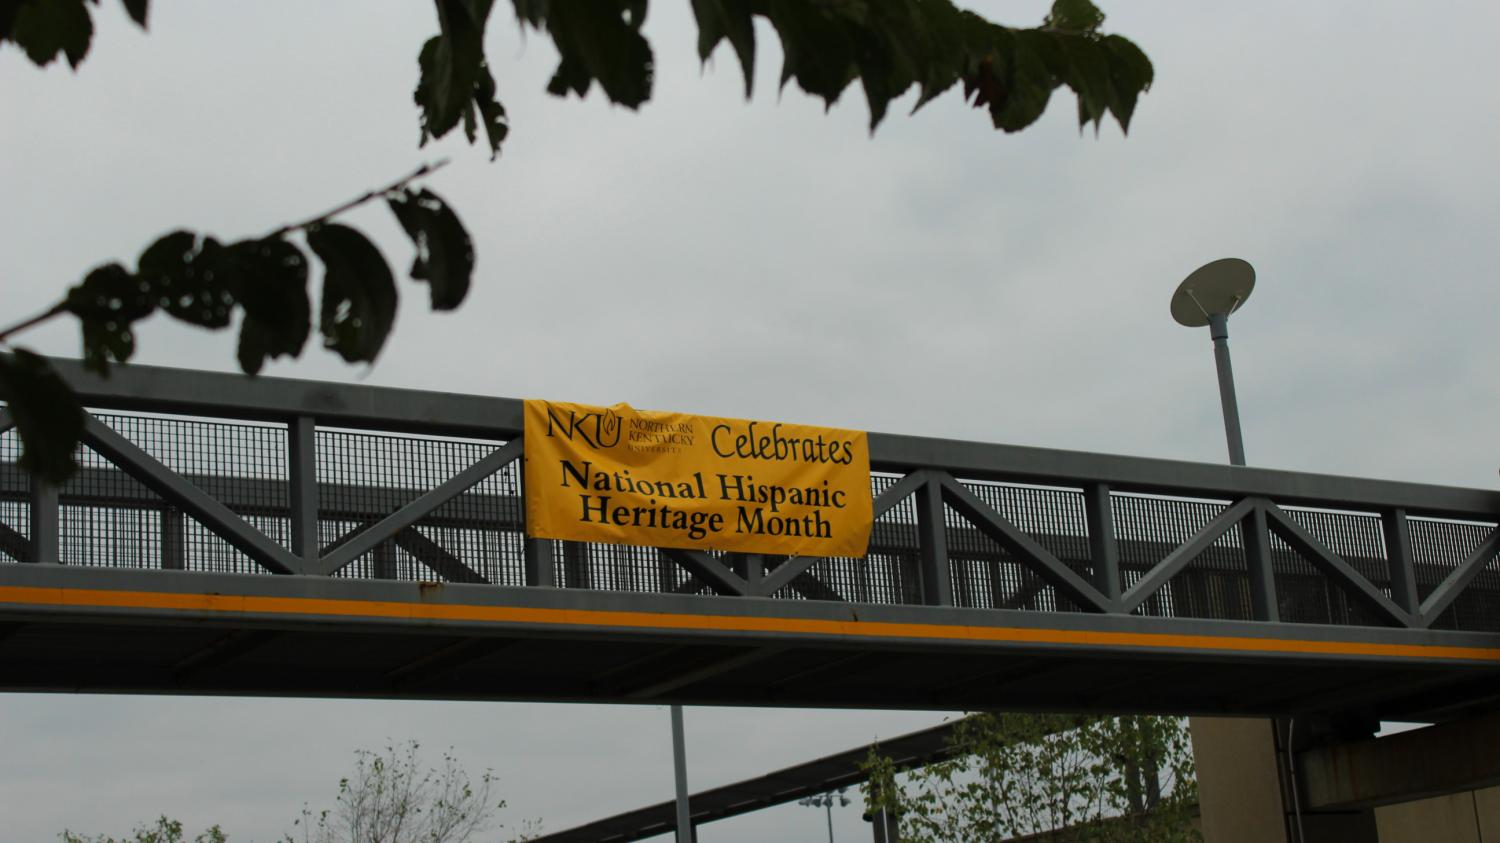 Hispanic Heritage Month was between Sept. 1 to Oct. 15.